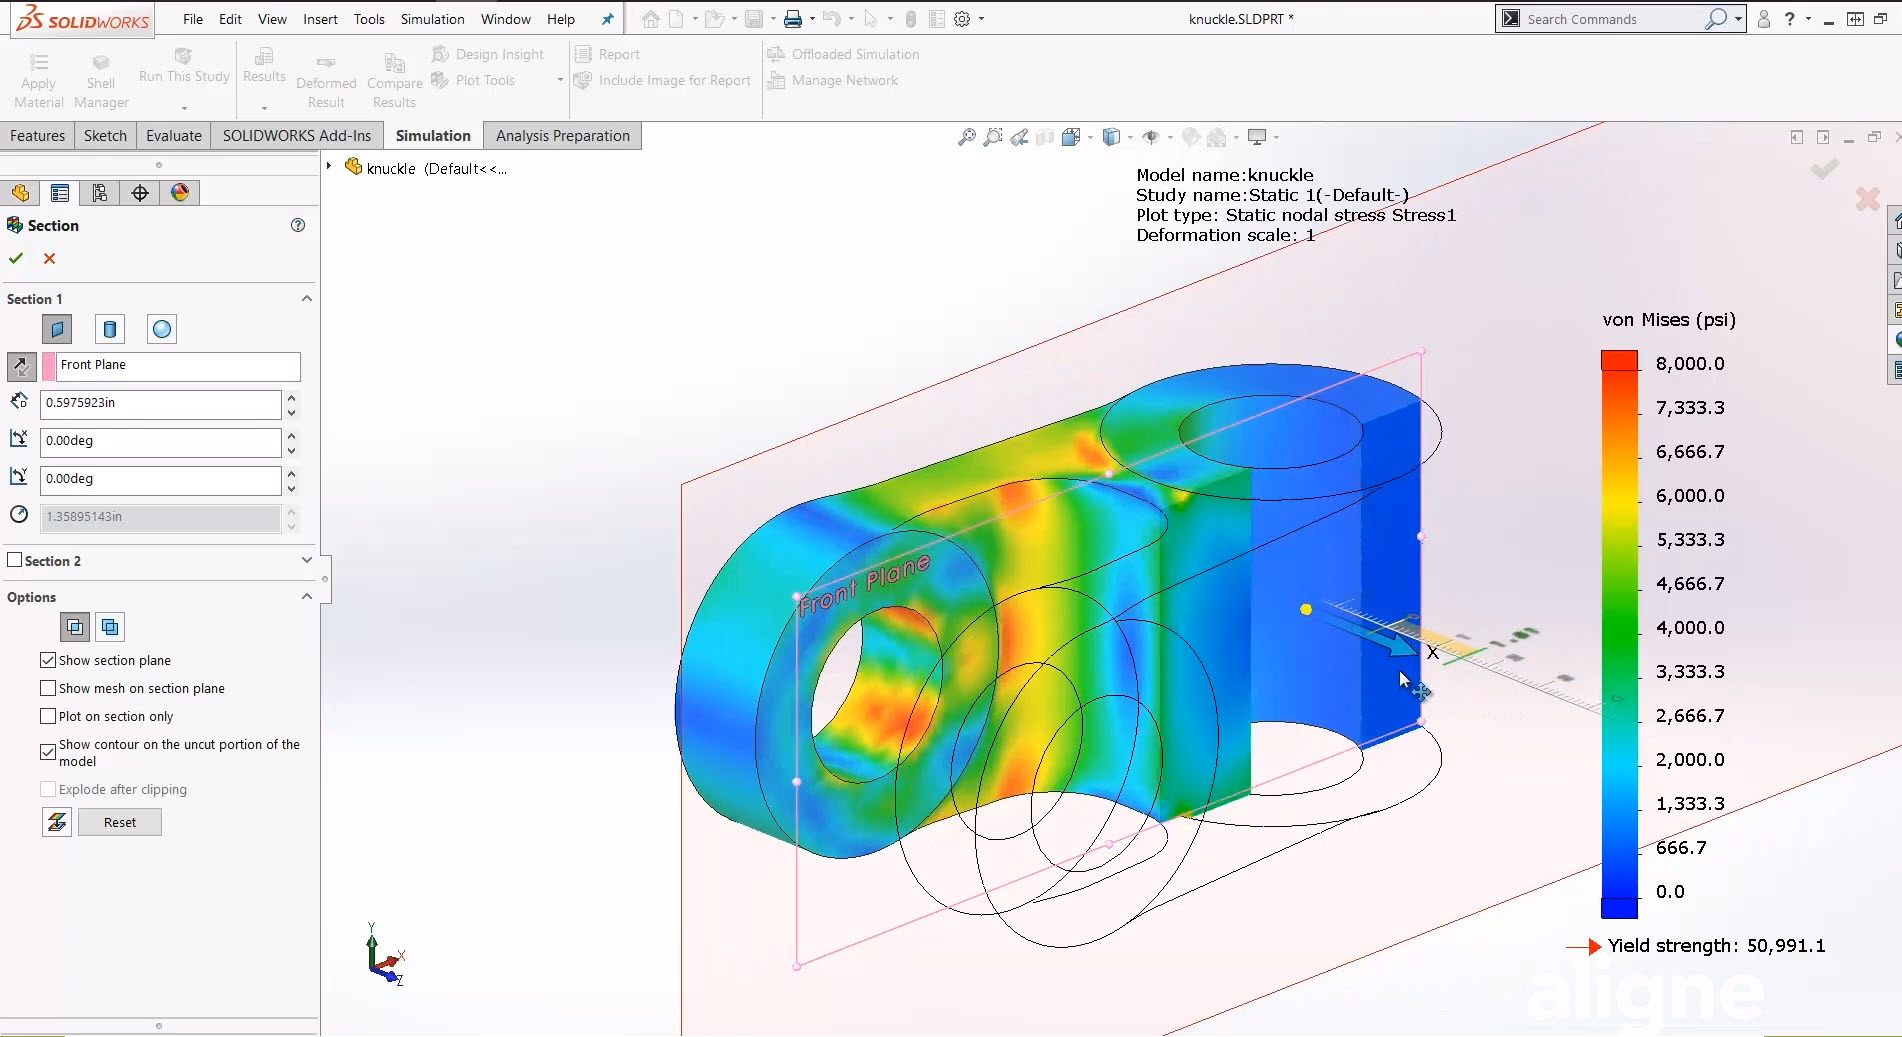 Introduction to SOLIDWORKS Simulation - Finite Element Analysis